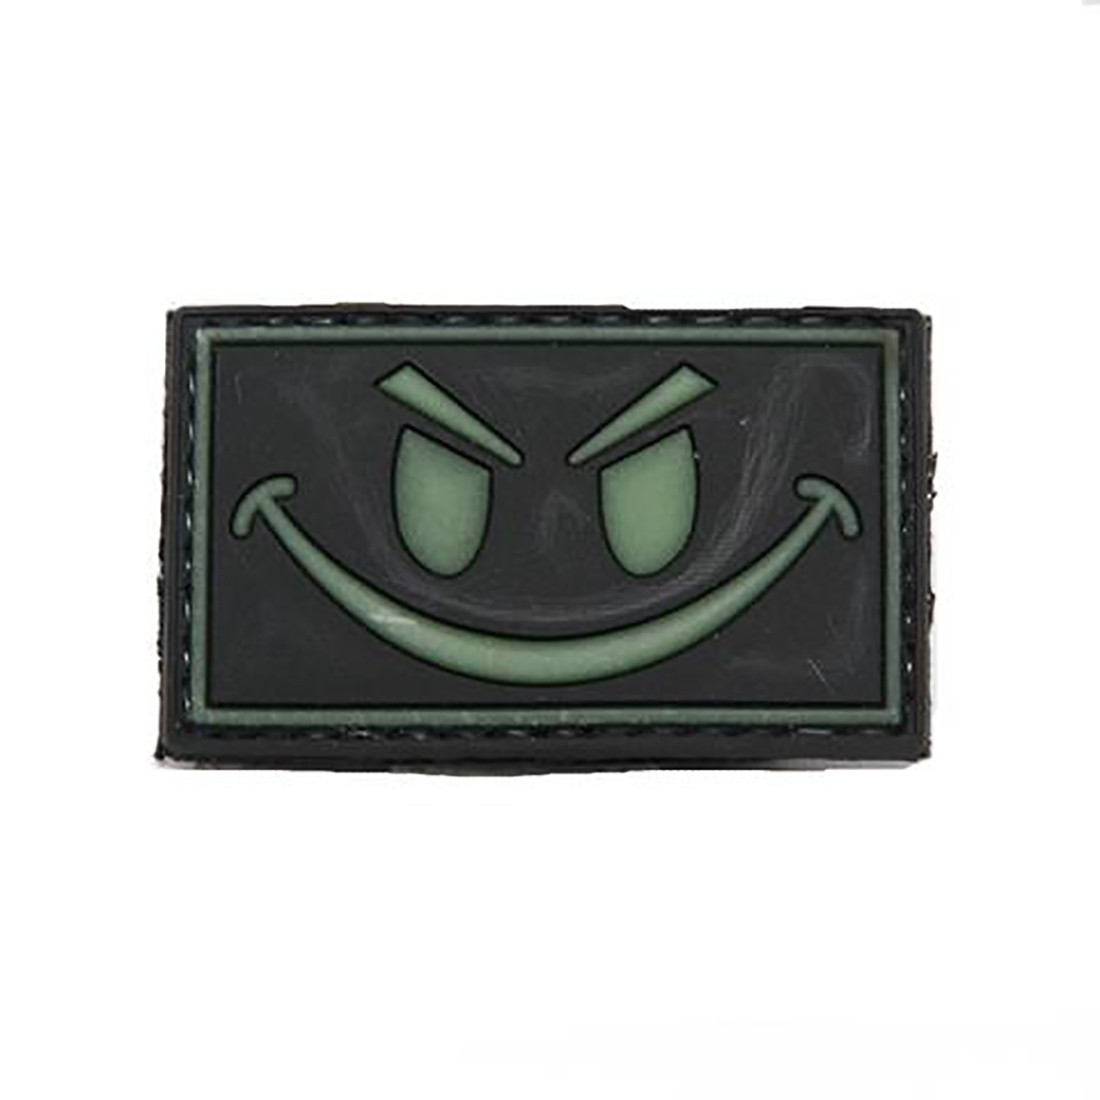 SMILEY GLOW Tactical Rubber Velcro Patches